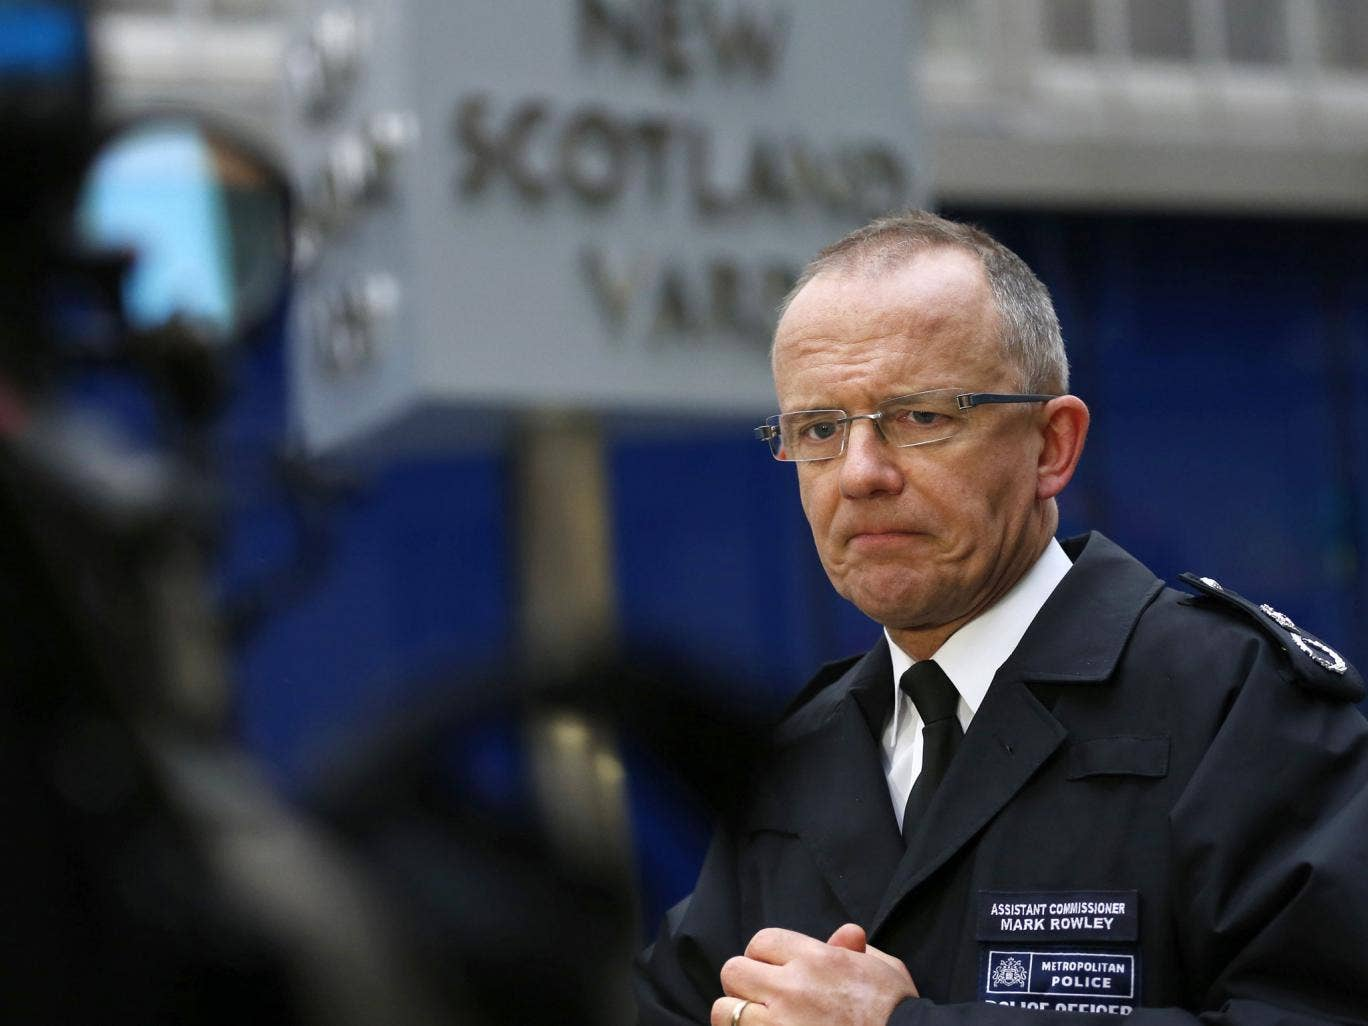 Metropolitan Police Assistant Commissioner Mark Rowley speaks to the media outside New Scotland Yard. The Met has been accused of failing the firearms officers who fatally wounded Mark Duggan following this week's verdict